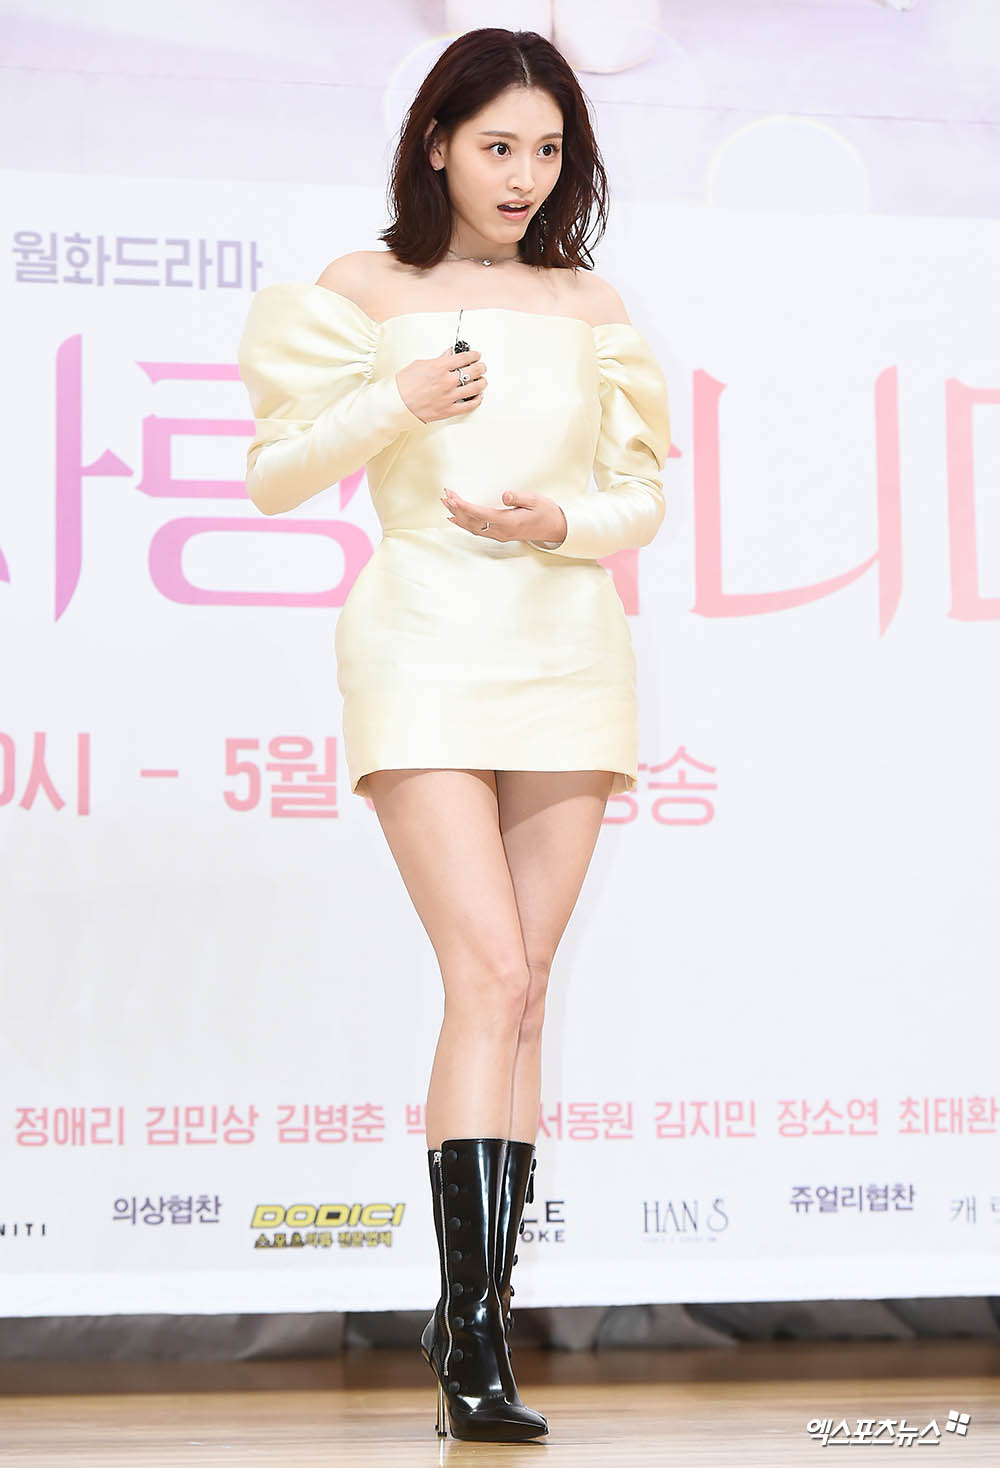 <p> 3 am, at the Seoul Mokdong SBS in SBS new tvNs Mon-Tue drama Second Love. production presentation attended actor Kim Jae-Kyung in this photo.</p><p>Fairy-like mini dress wear appeared</p><p>Juicer popping smile</p><p>Dolls, as no</p><p>Photo drops Earring in a surprise</p><p>Fallen Earring leisurely restart</p><p>Coquette seconds greetings</p><p>Fashion today?</p>